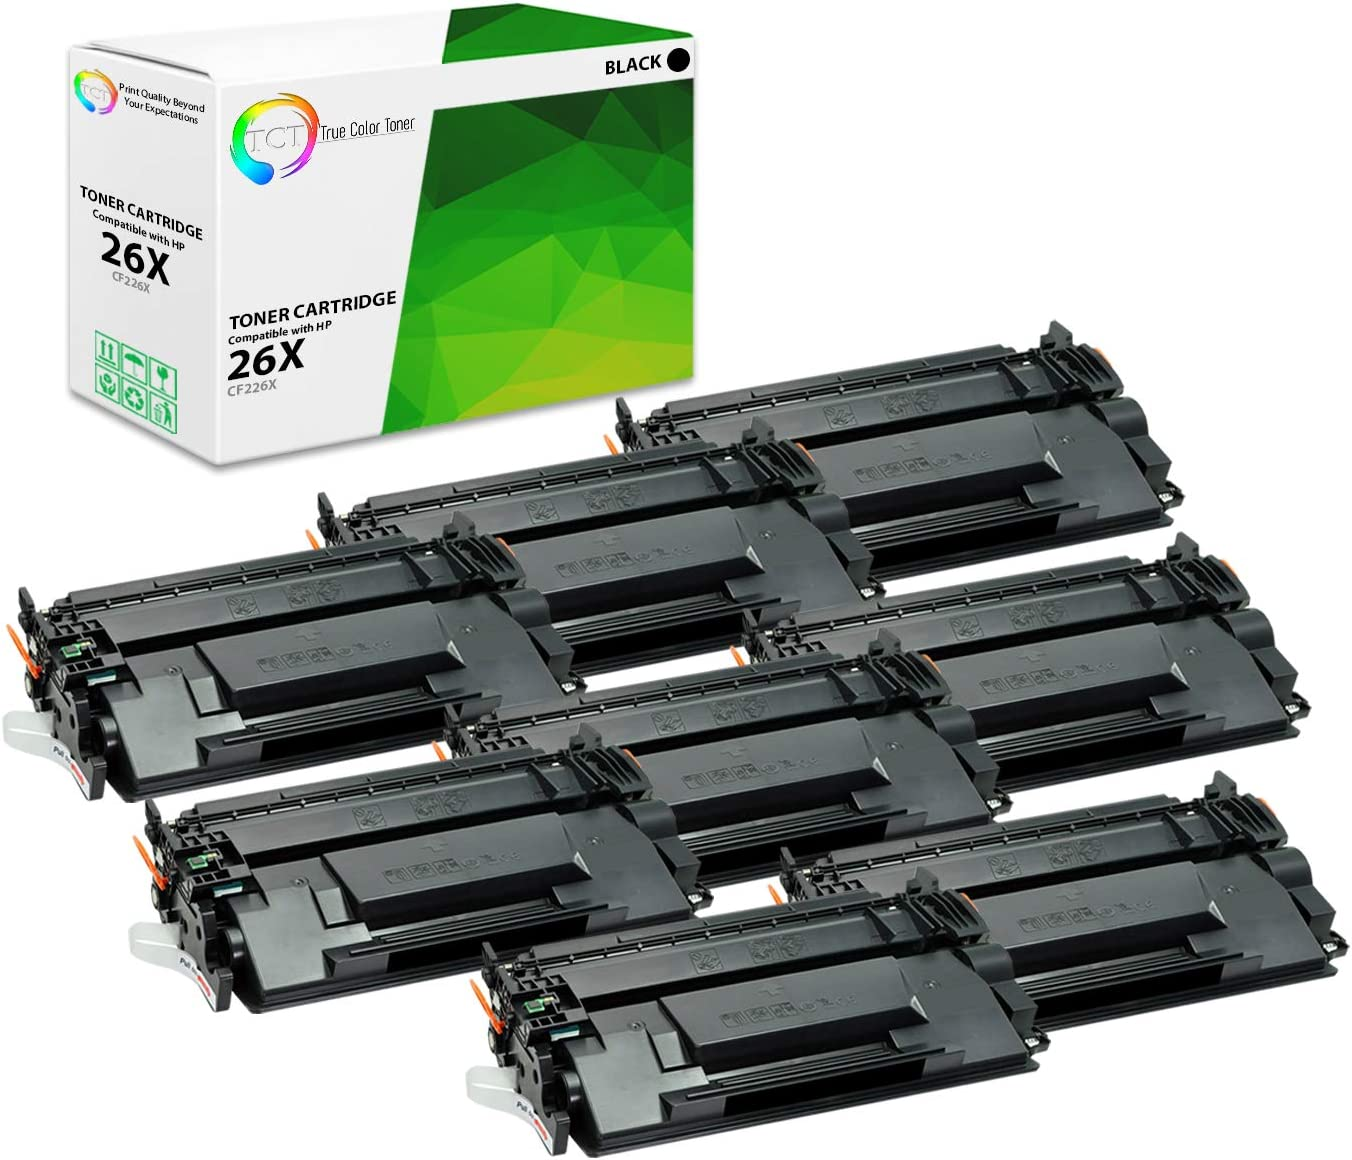 MFP M426DW M426FDN M426FDW Printers TCT Premium Compatible Toner Cartridge Replacement for HP 26X CF226X Black High Yield Works with HP Laserjet Pro M402D M402DN M402N - 8 Pack 9,000 Pages